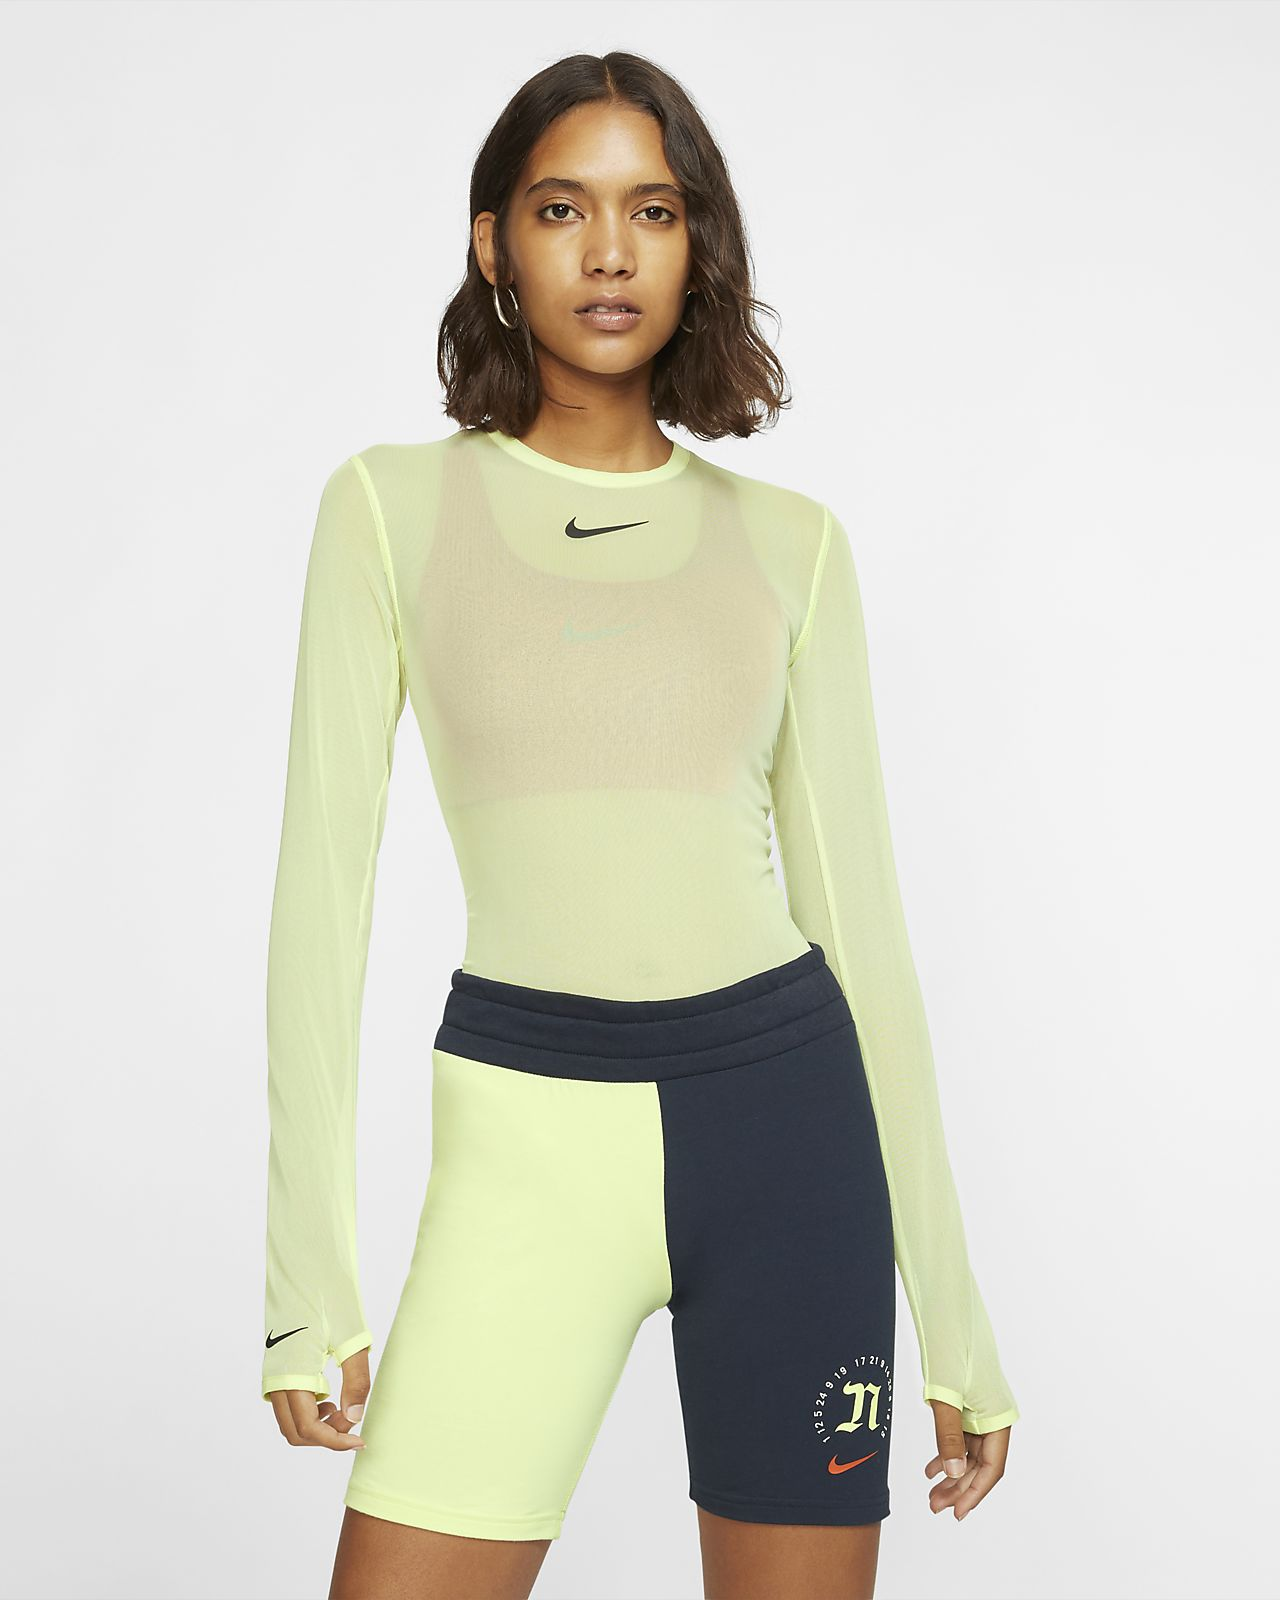 Nike Sportswear Tech Pack City Ready Women's Bodysuit